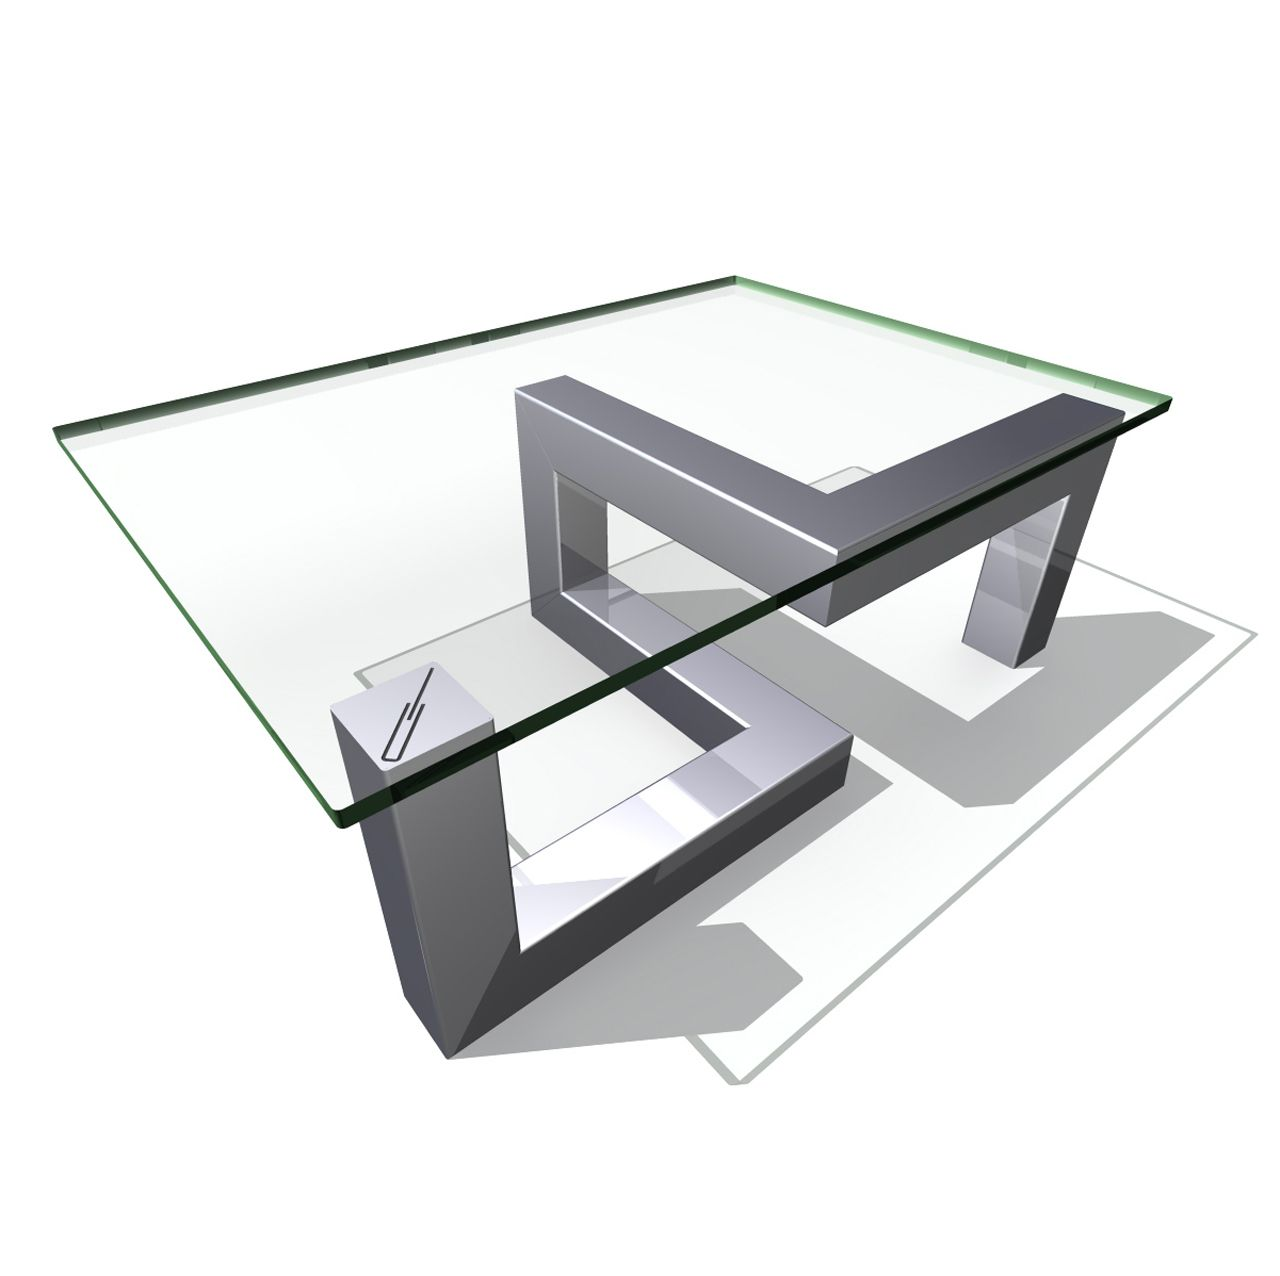 table basse en verre et acier table basse ronde verre tremp sybil ampm with table basse en. Black Bedroom Furniture Sets. Home Design Ideas